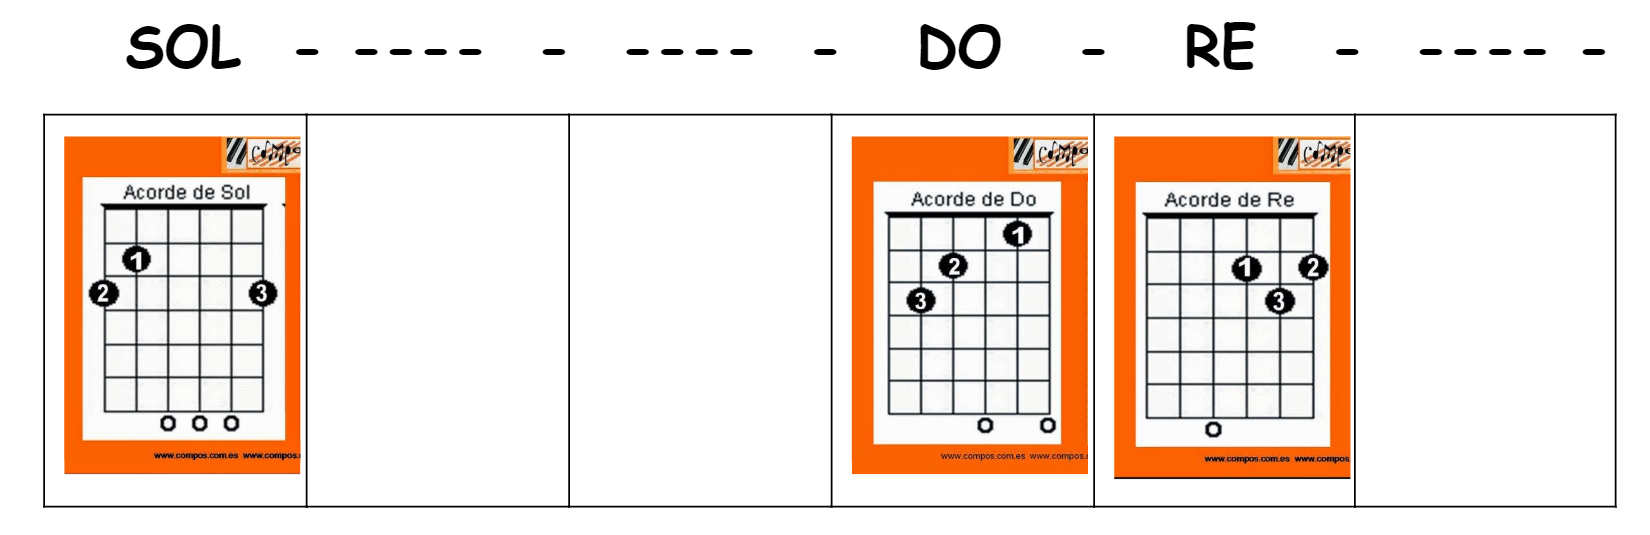 01-03 SOL-DO-RE